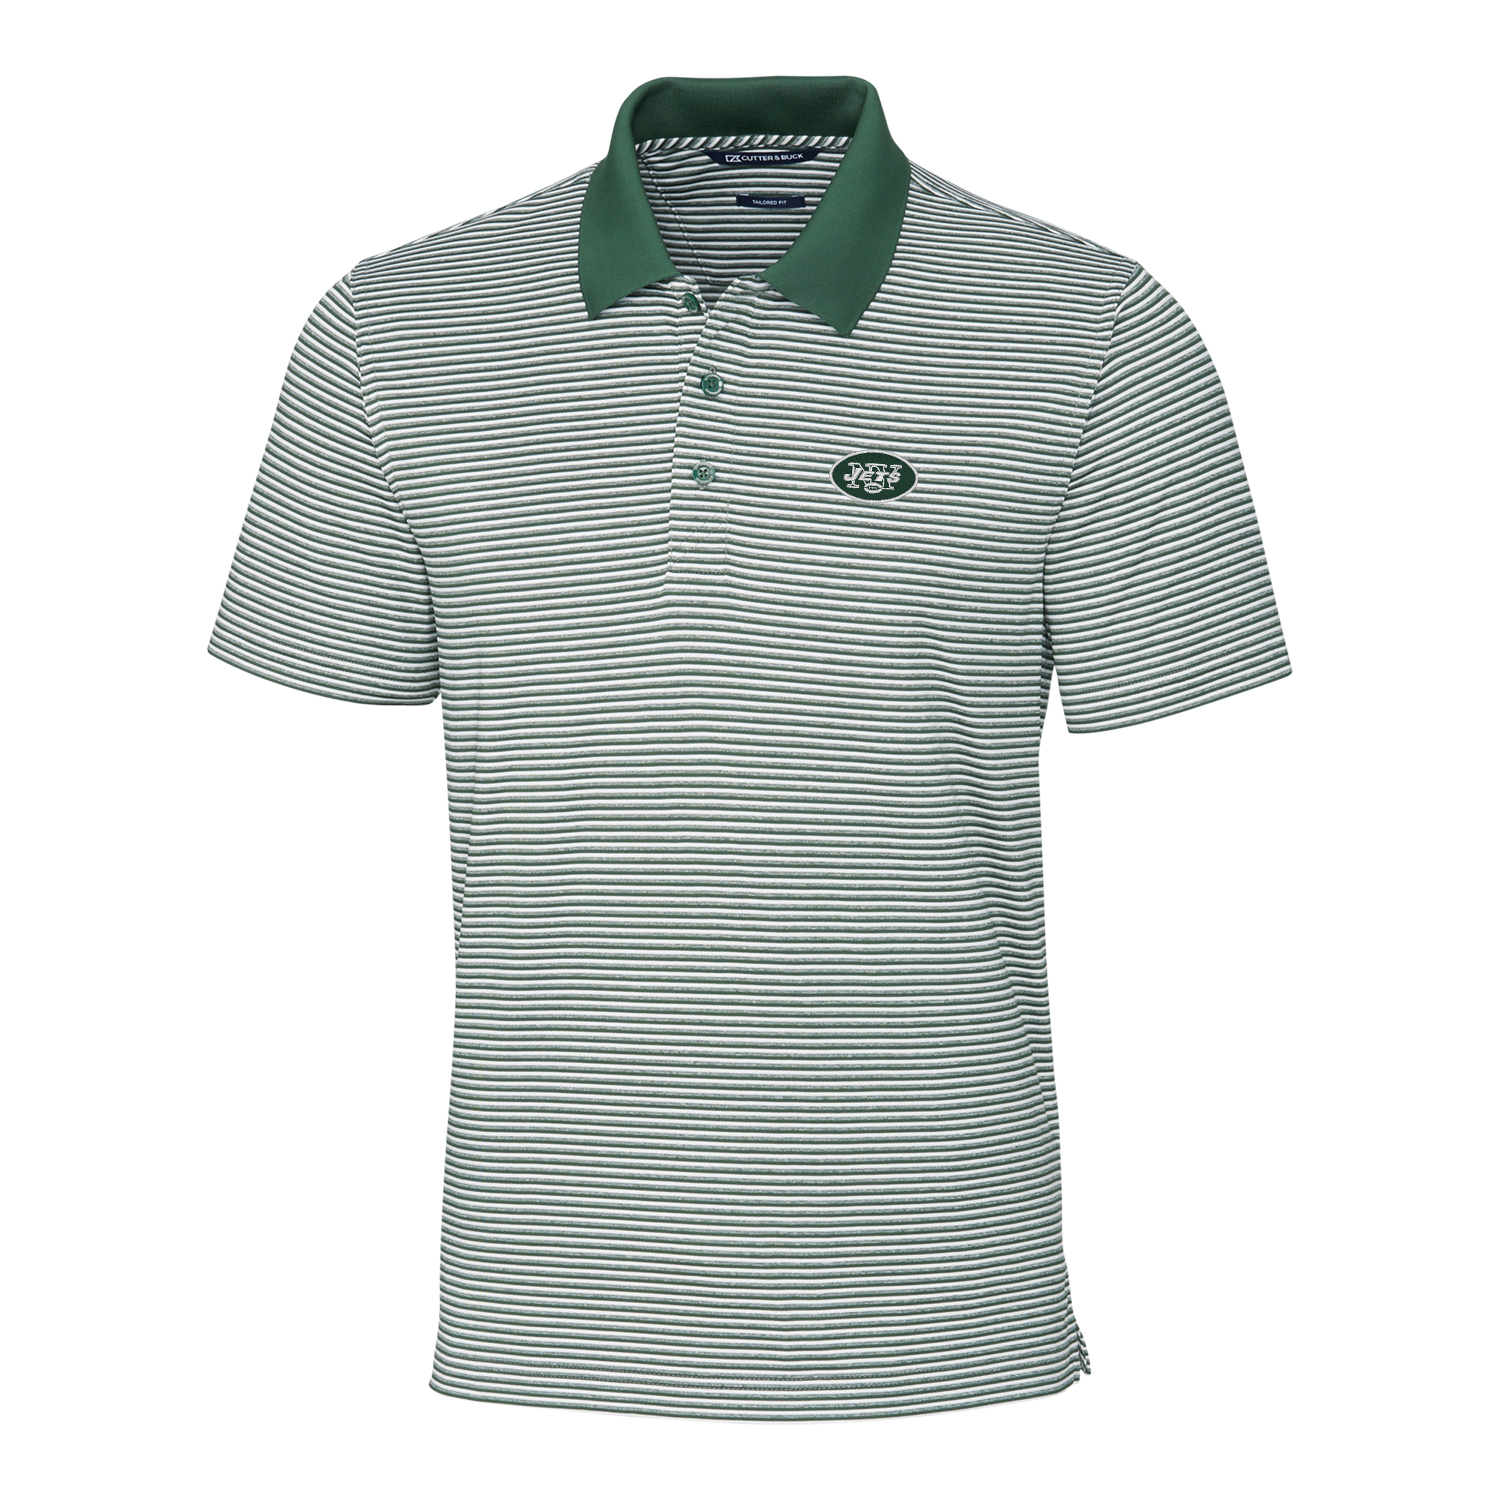 New York Jets Cutter & Buck Forge Tonal Stripe Tailored Fit Polo - Green